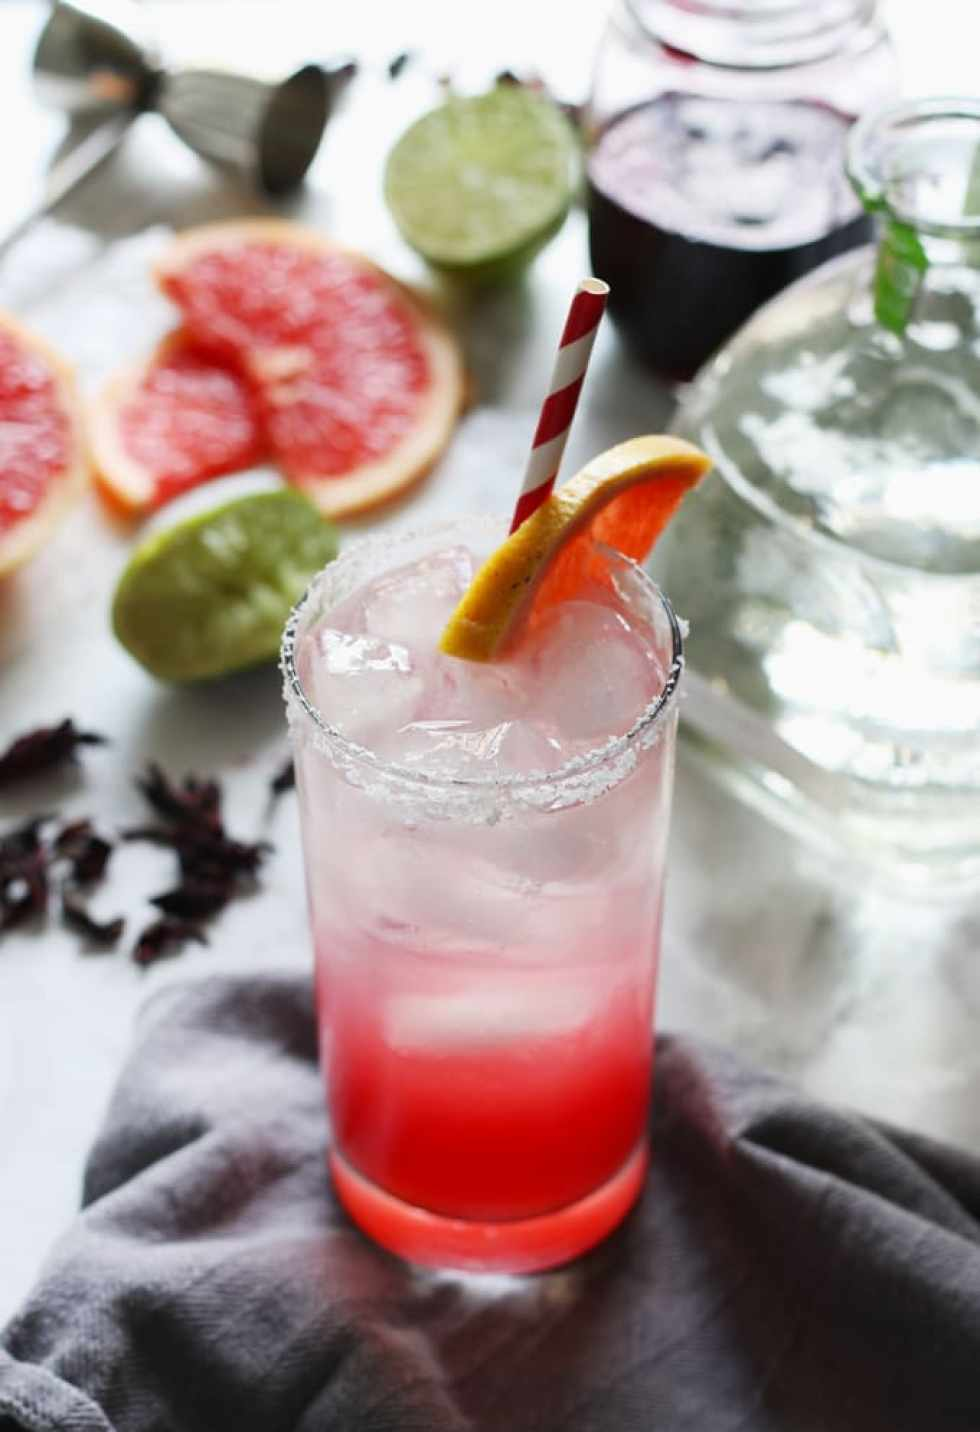 Another Paloma to beat the heat, with a twist of grapefruit juice, lime and hibiscus extract.